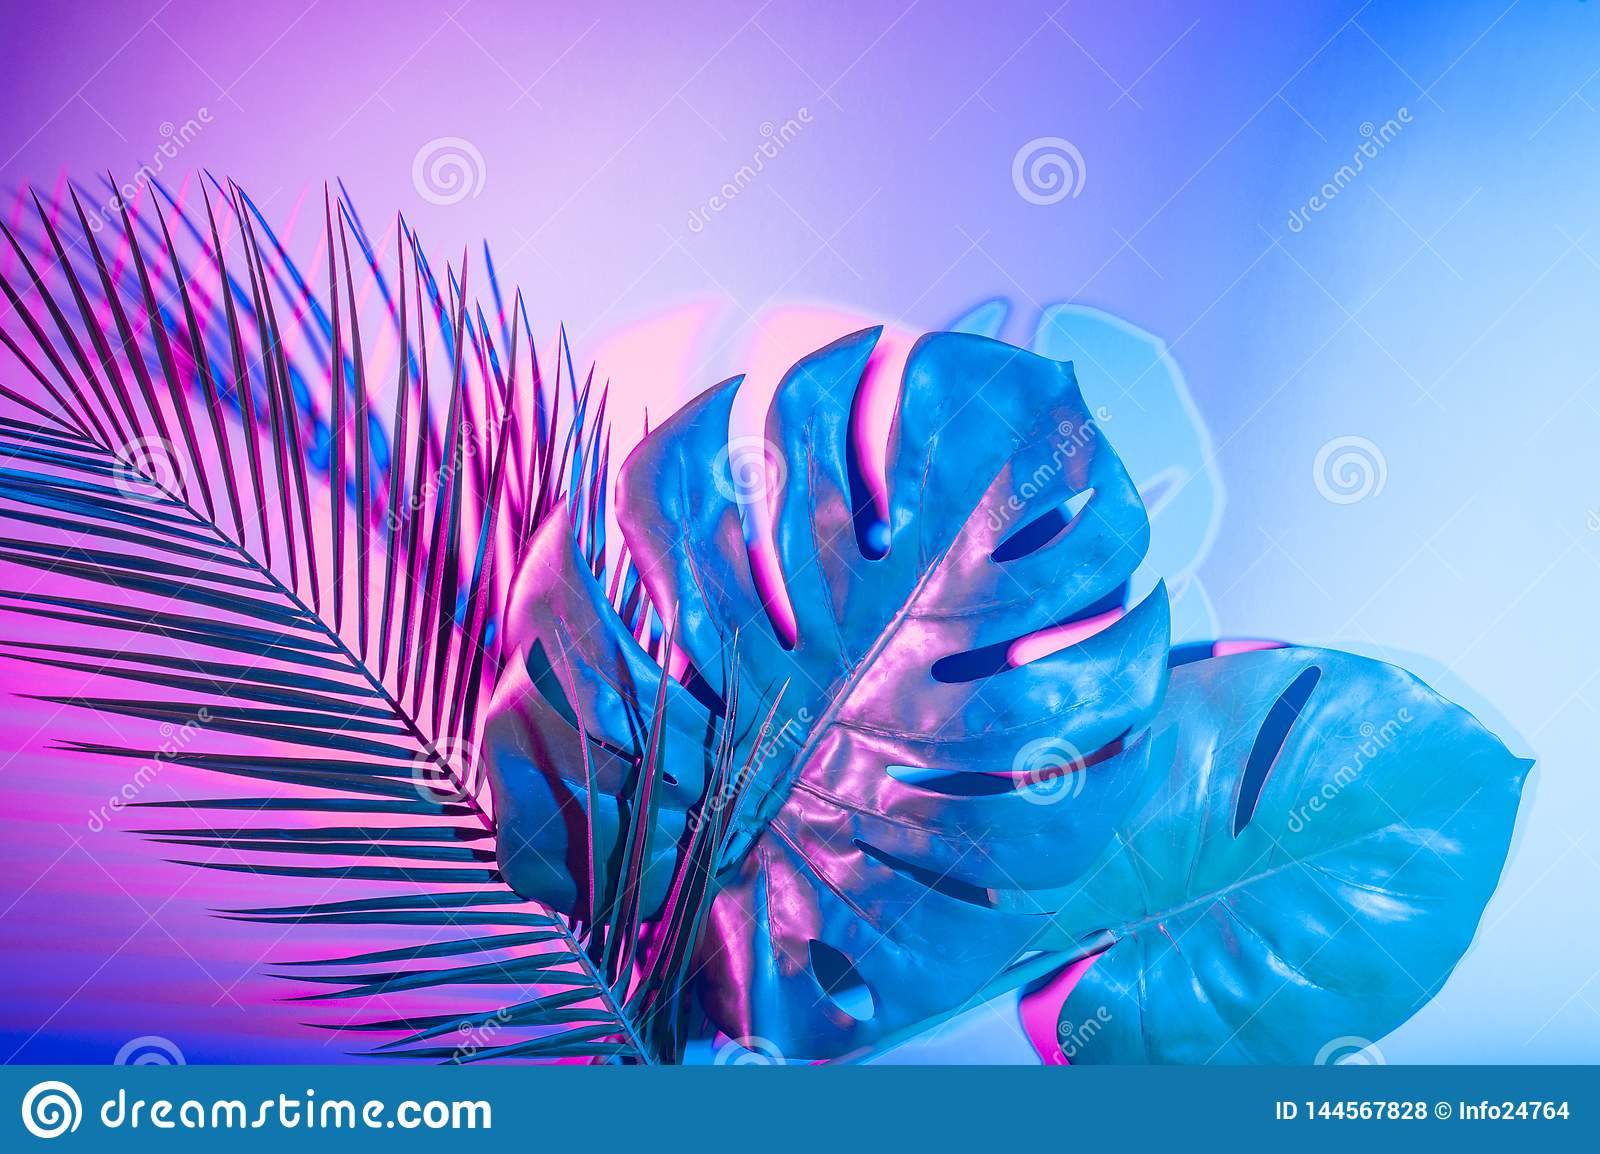 Tropical Leaves In Vibrant Bold Gradient Holographic Neon Colors Stock Photo Image Of Hipster Gradient 144567828 78 likes · 21 talking about this. https www dreamstime com tropical leaves vibrant bold gradient holographic neon colors tropical leaves vibrant bold gradient holographic neon colors image144567828